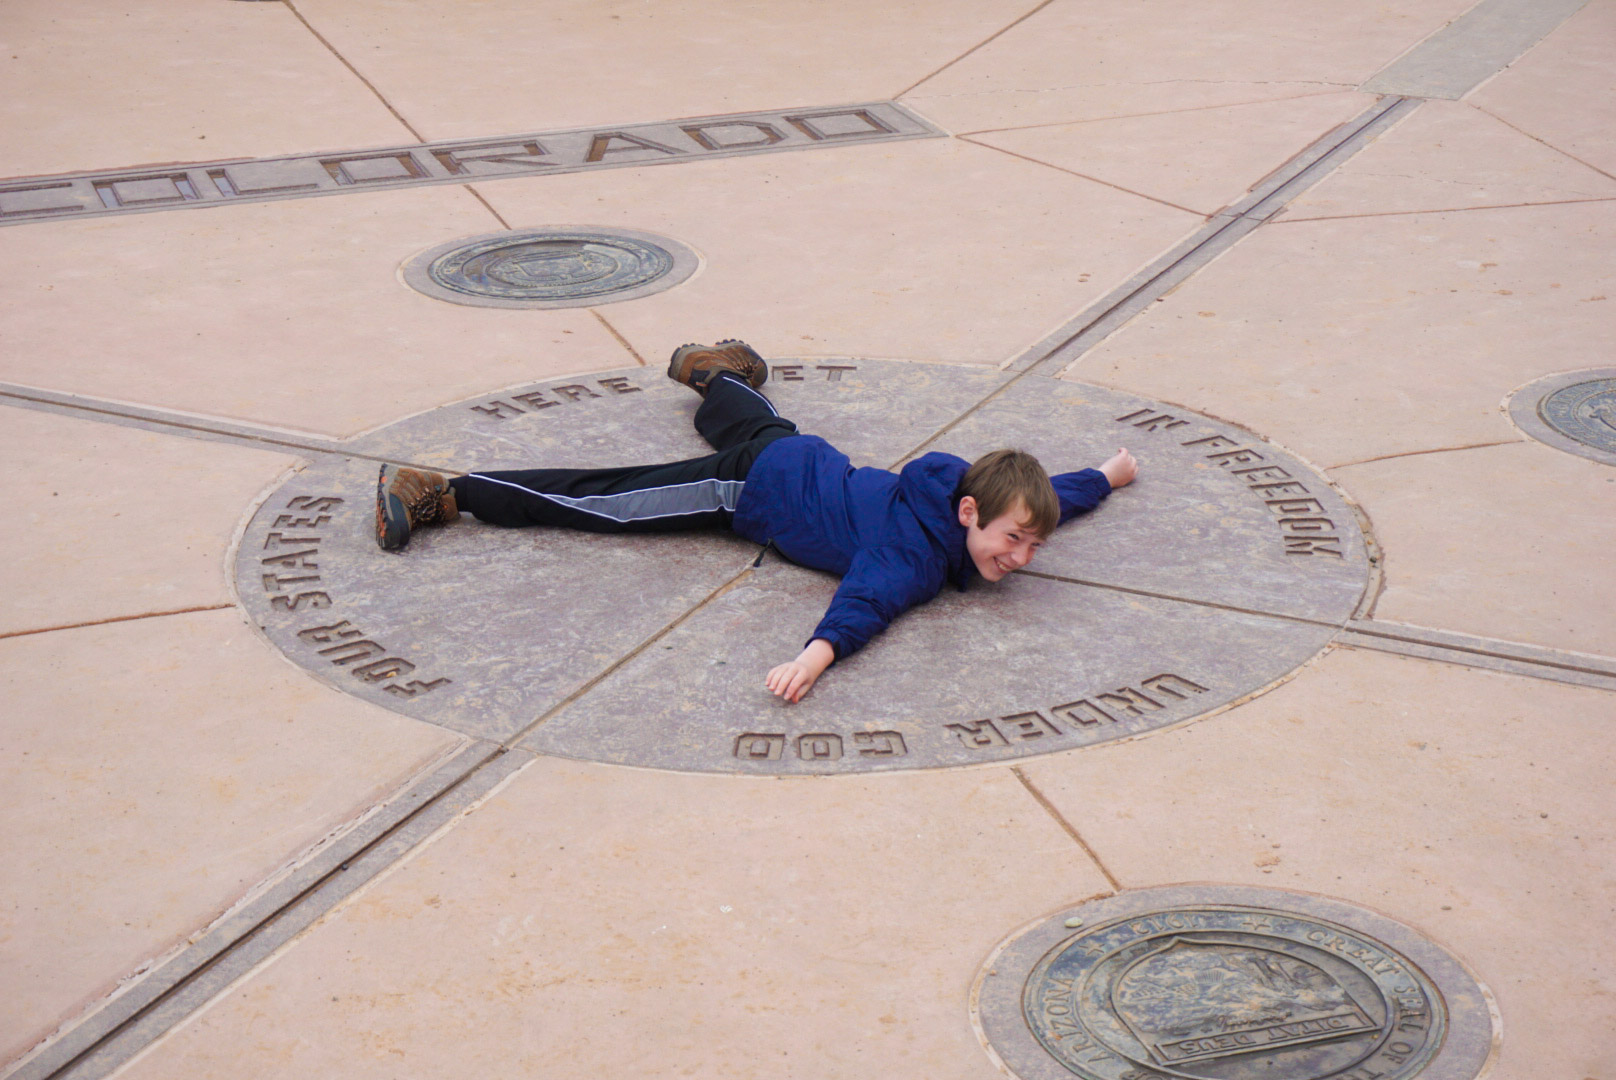 Collin in four states at once!